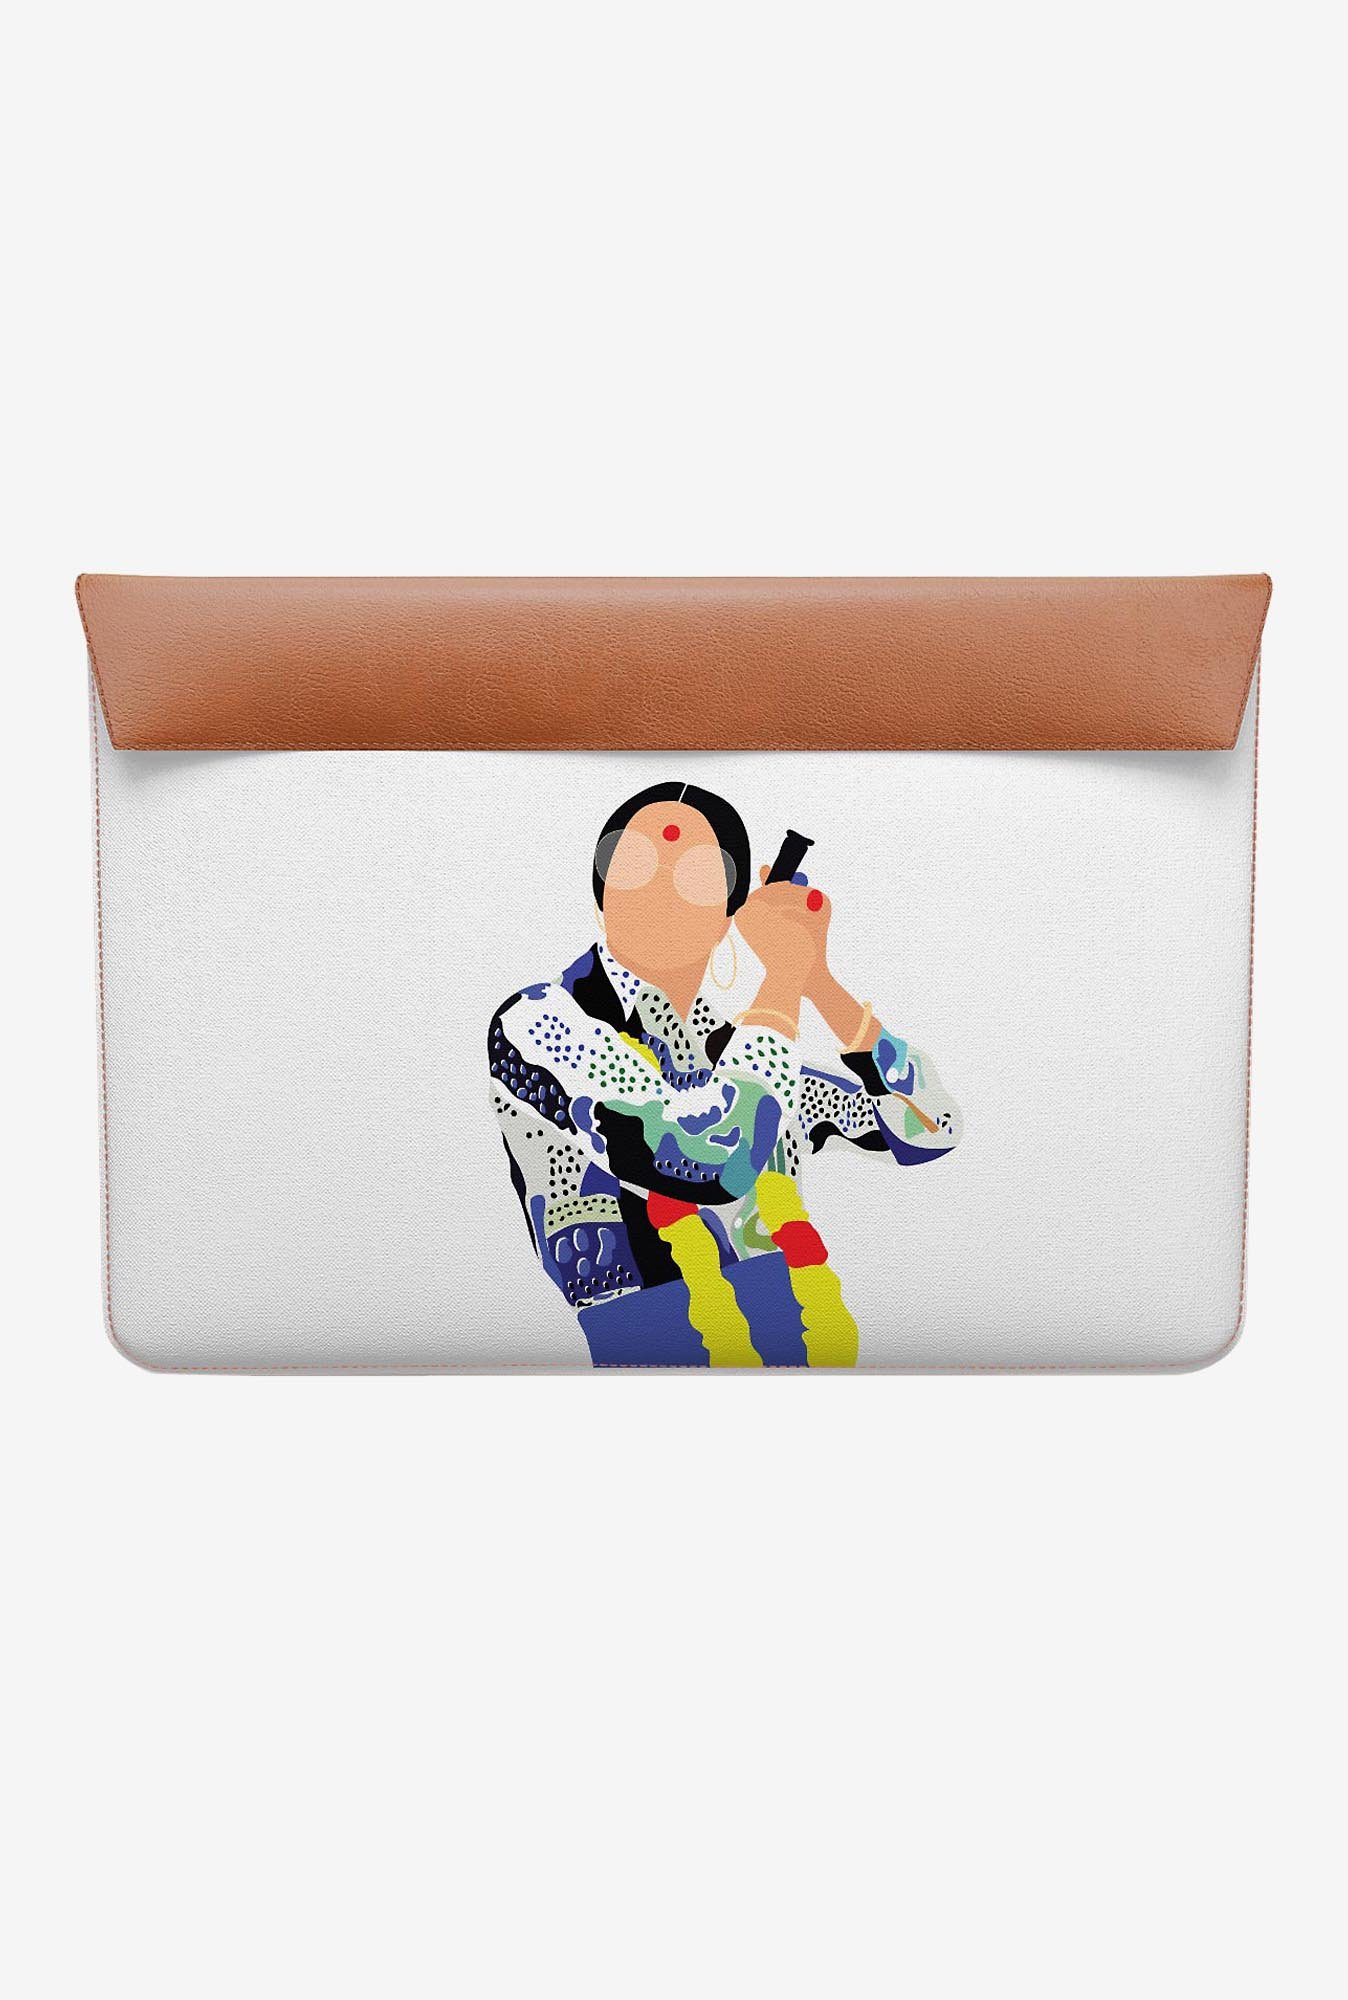 DailyObjects Zeenat Toke MacBook Air 11 Envelope Sleeve